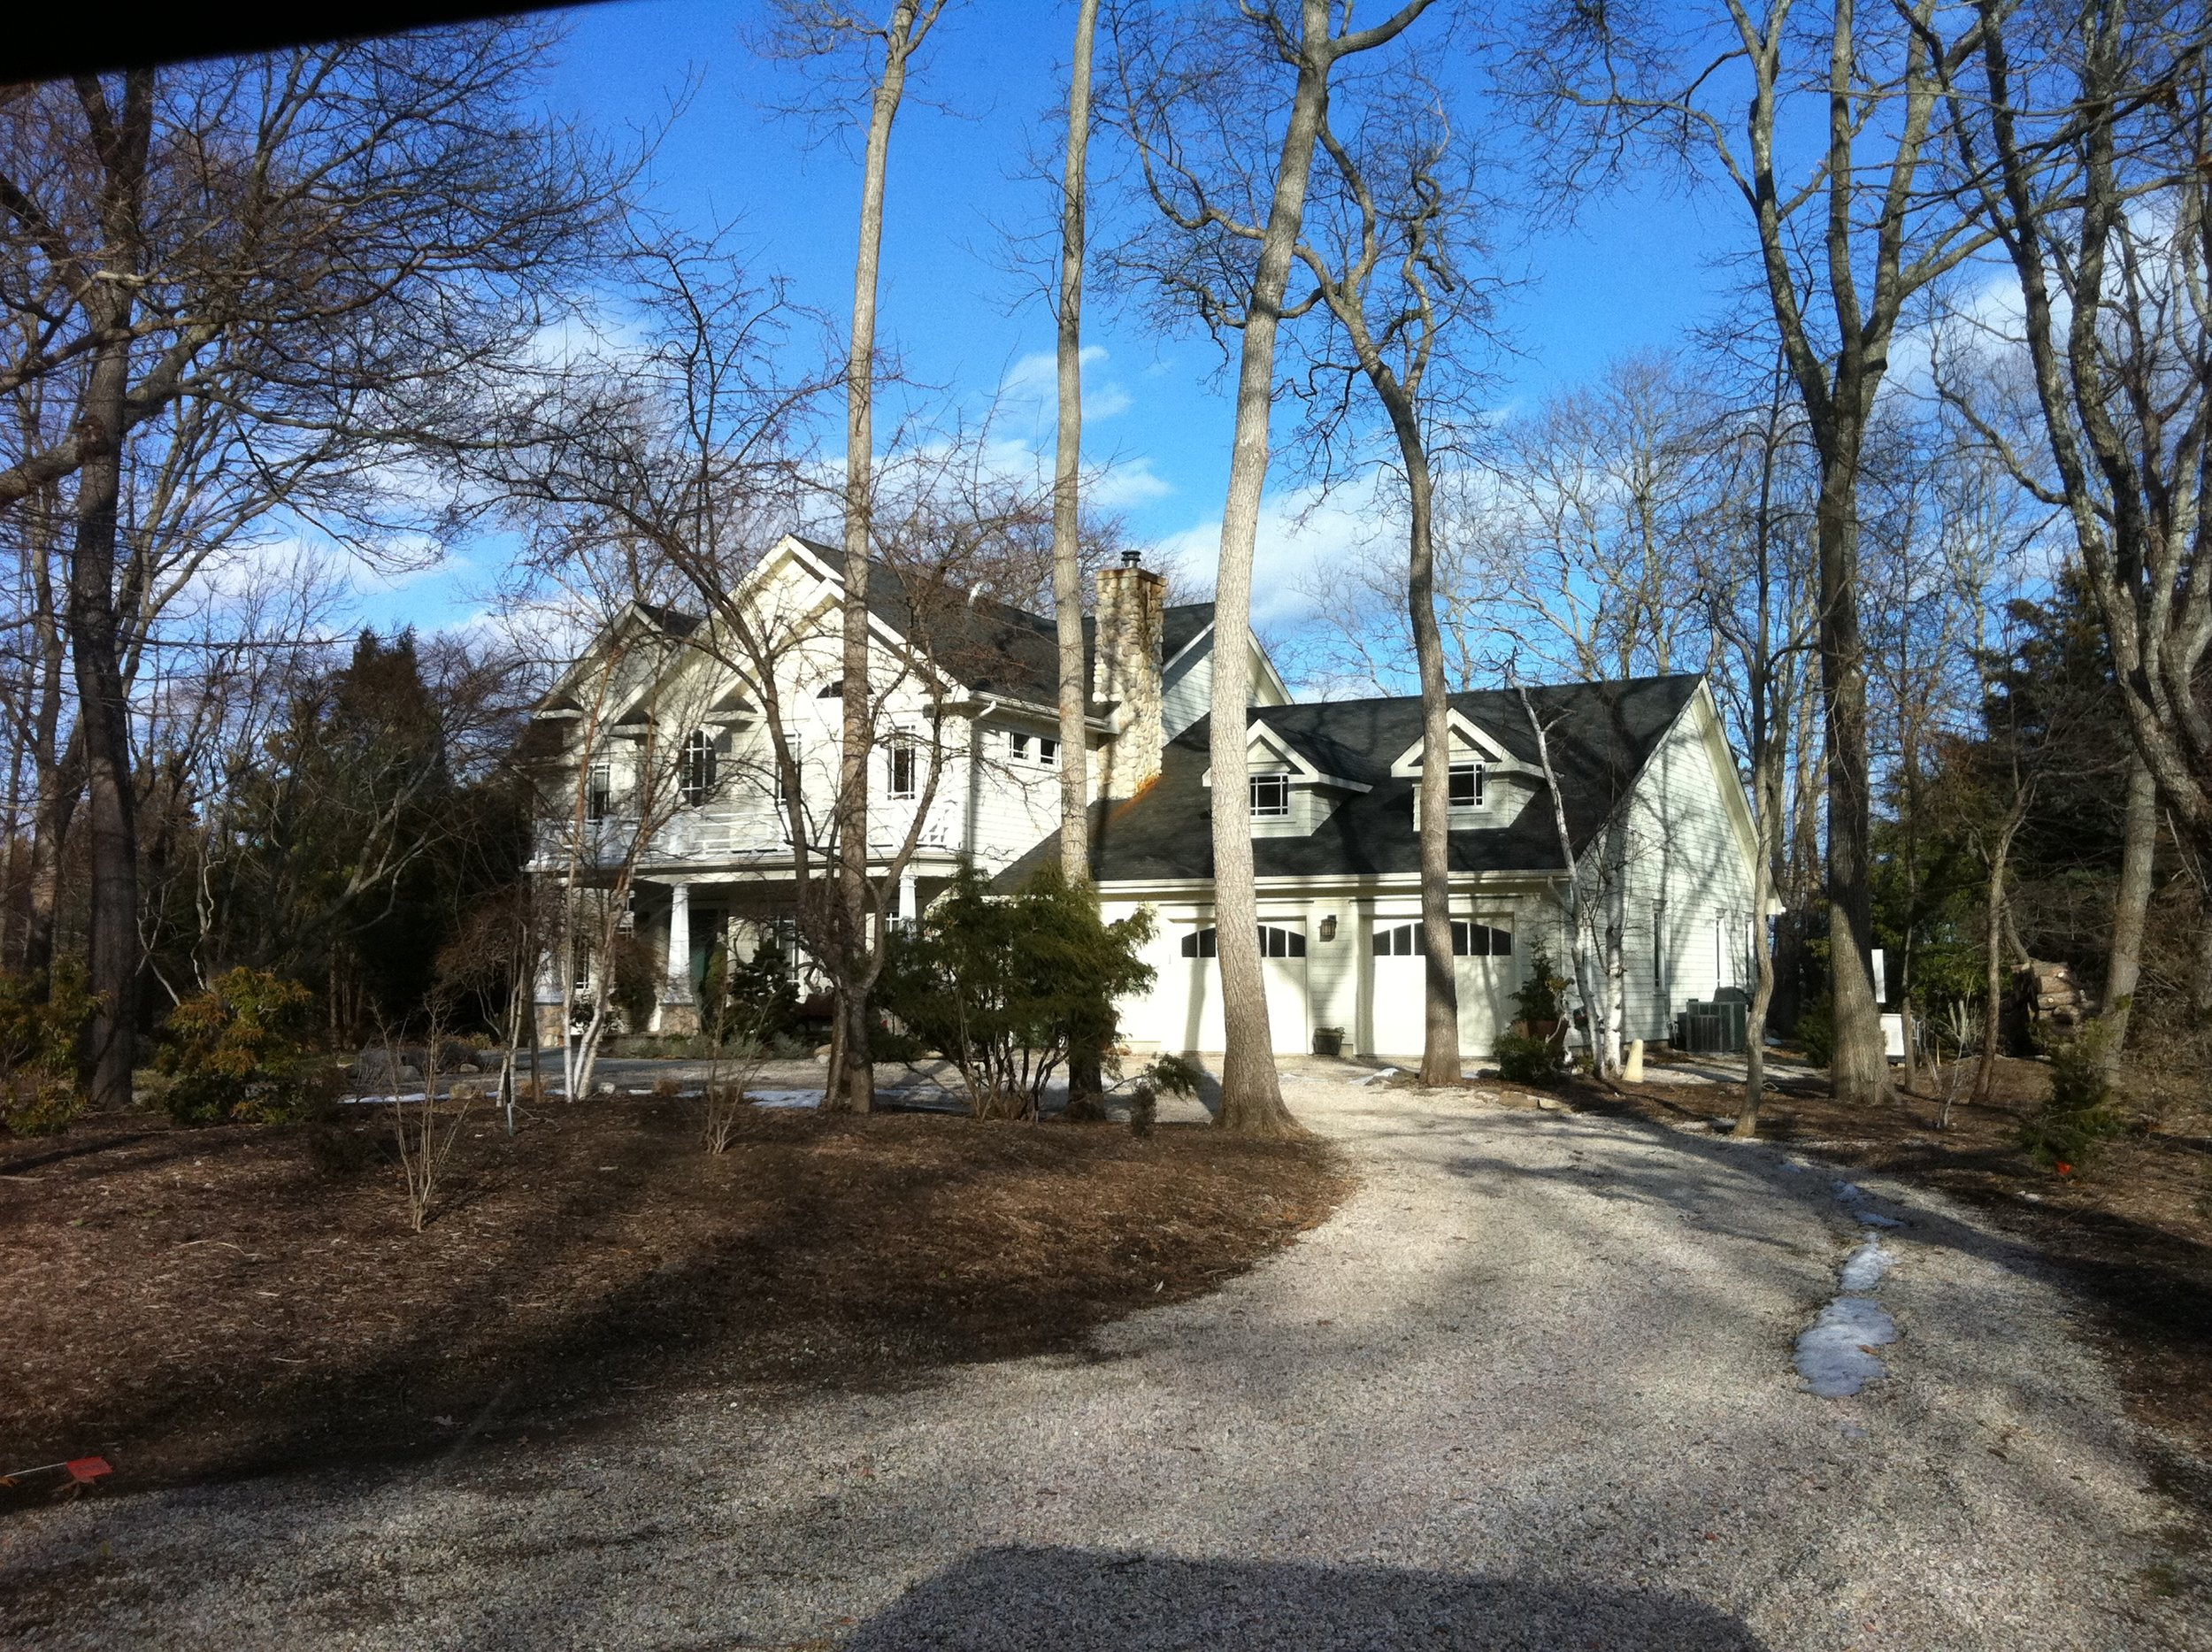 Private Residence, Greenport, NY